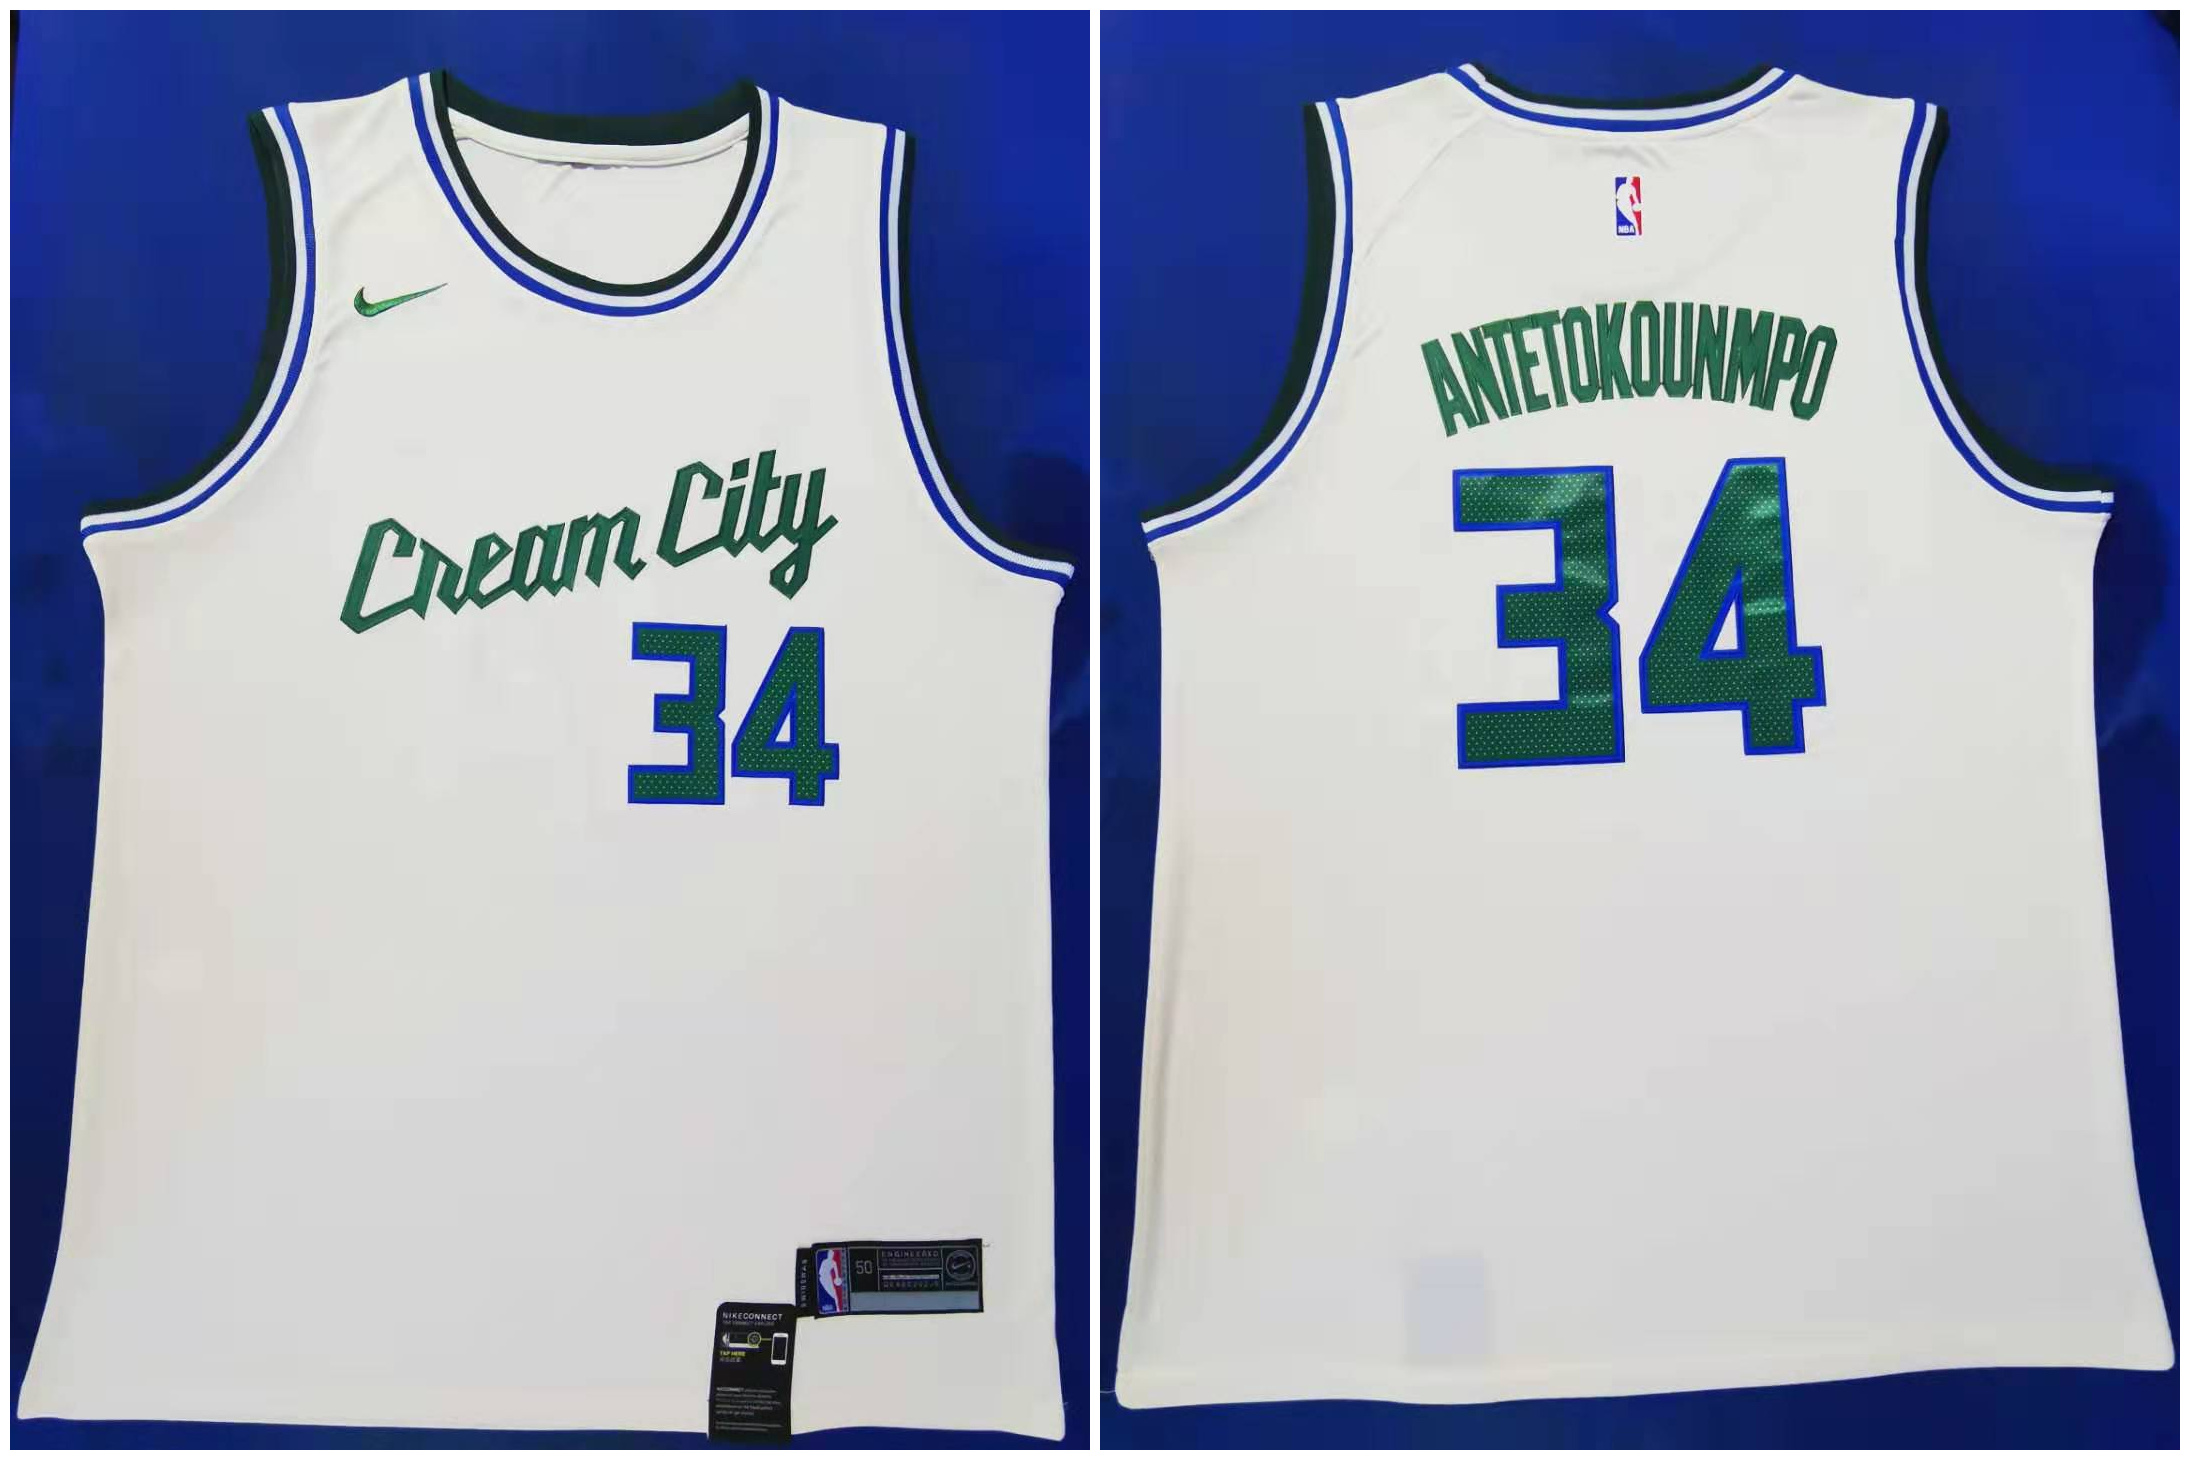 Bucks 34 Giannis Antetokounmpo Cream 2019-20 City Edition Nike Swingman Jersey